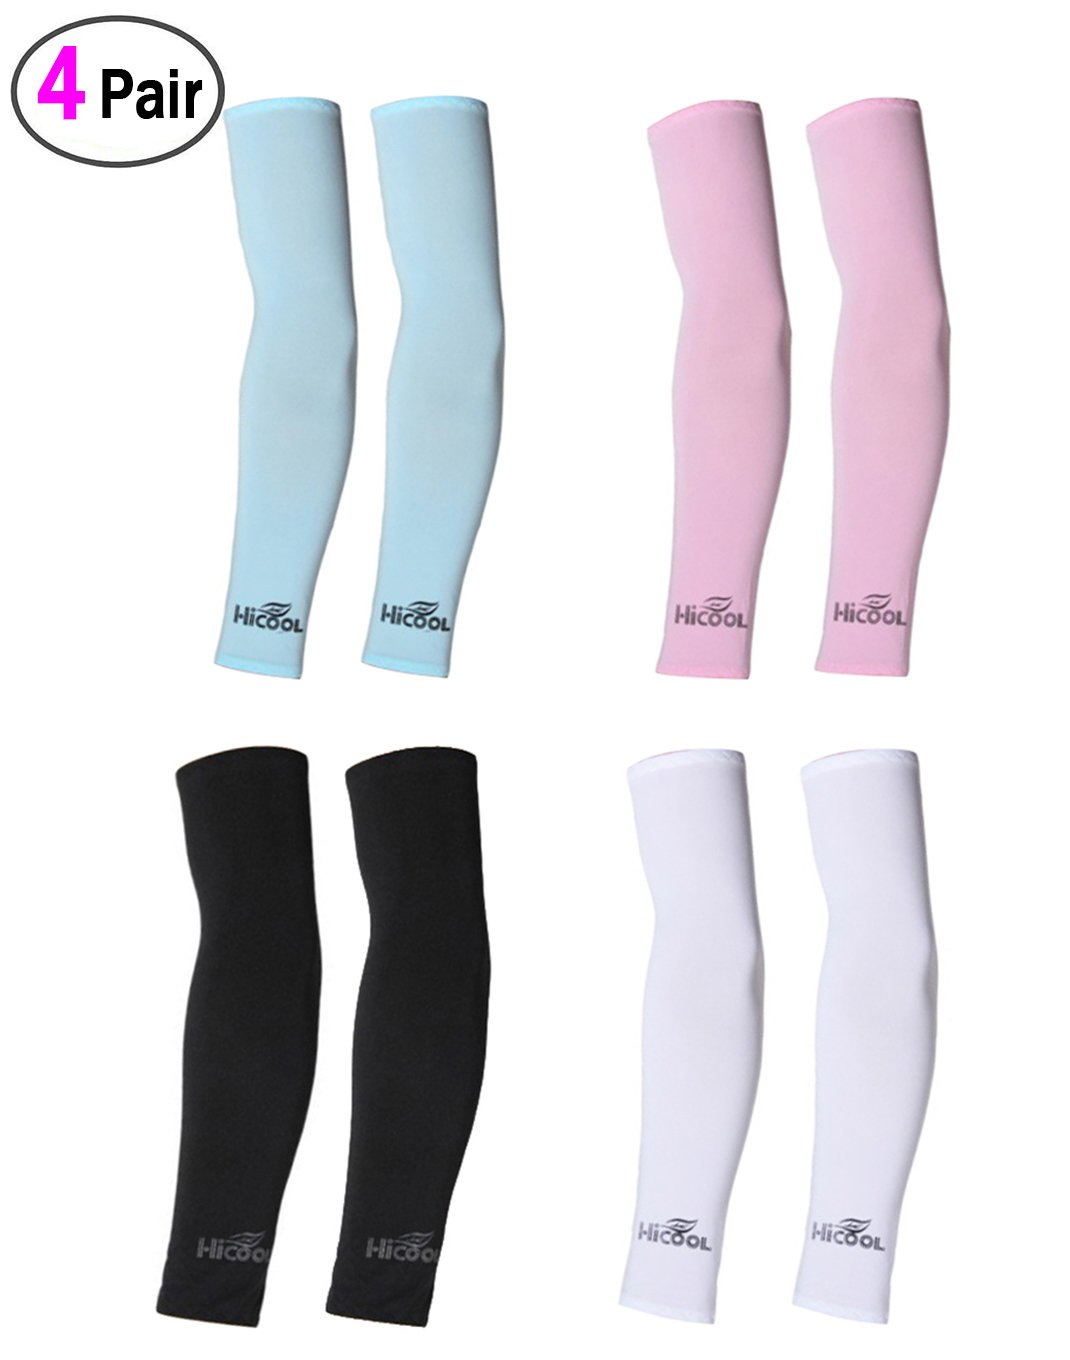 UV Arm Sleeves 2 Pairs Universal Fit Sleeves to Protect Your Skin from Sun Exposure. Pink